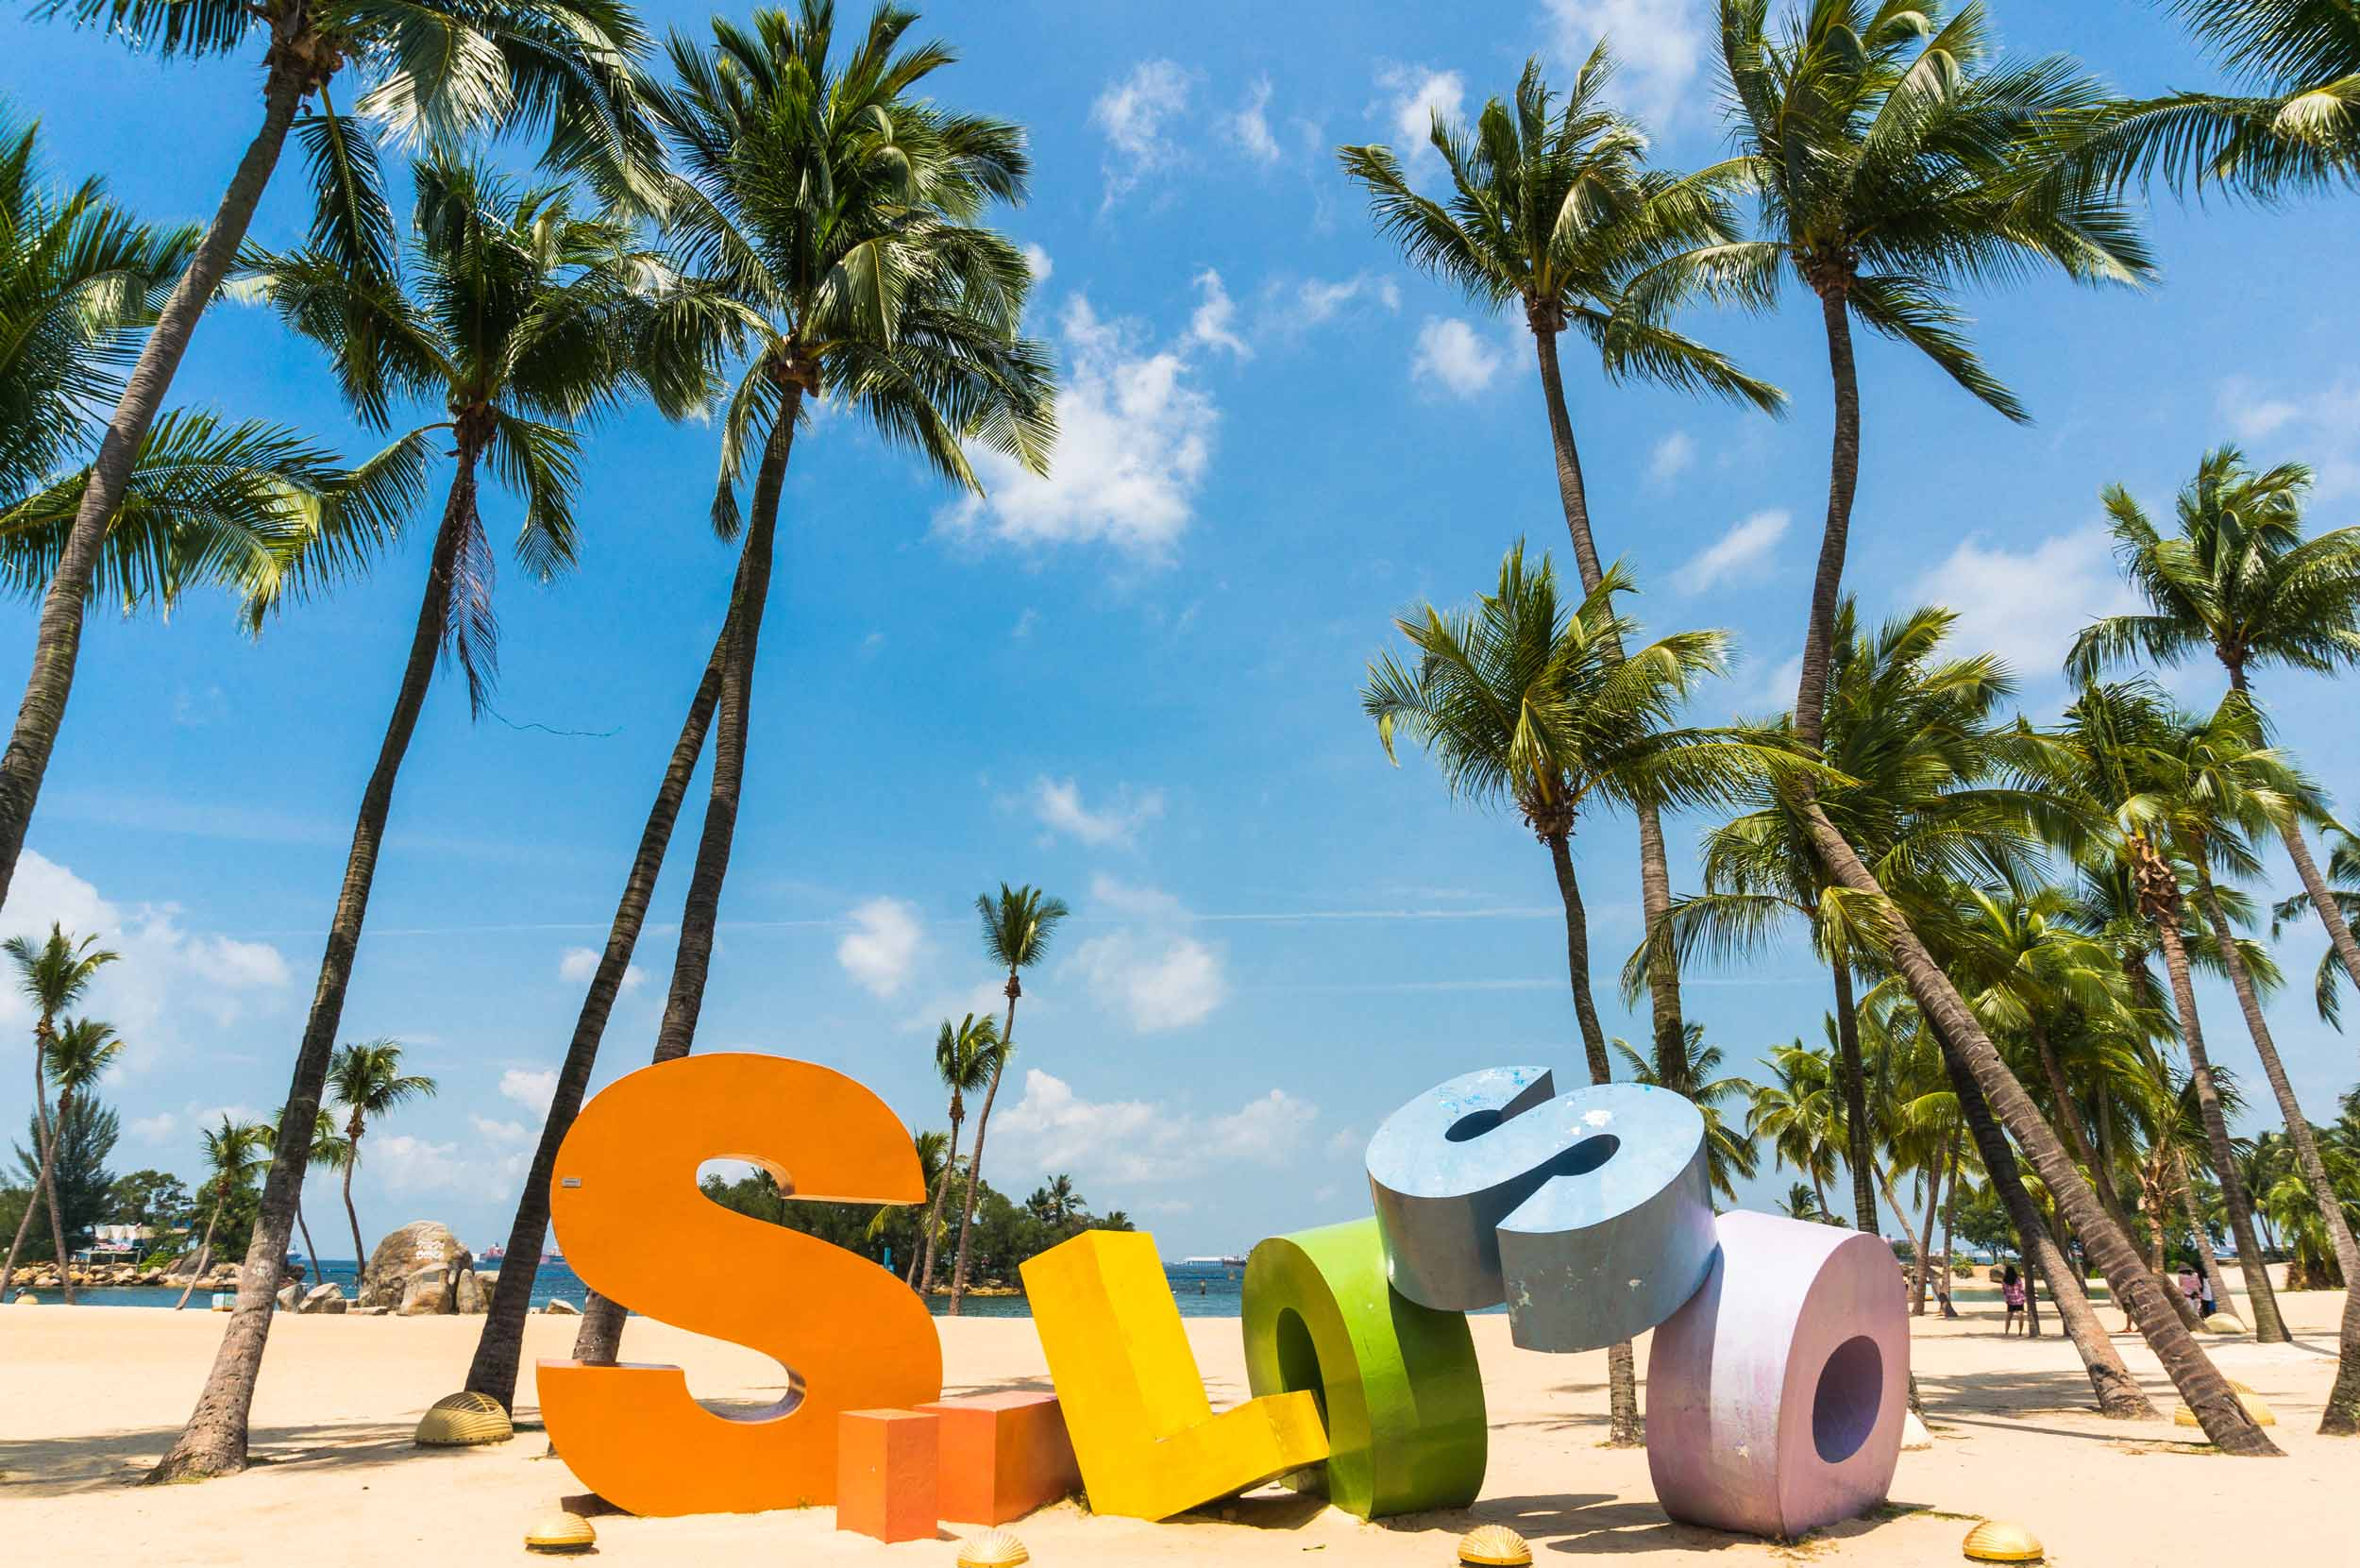 SENTOSA ISLAND – 5 THINGS TO DO IN THE STATE OF FUN